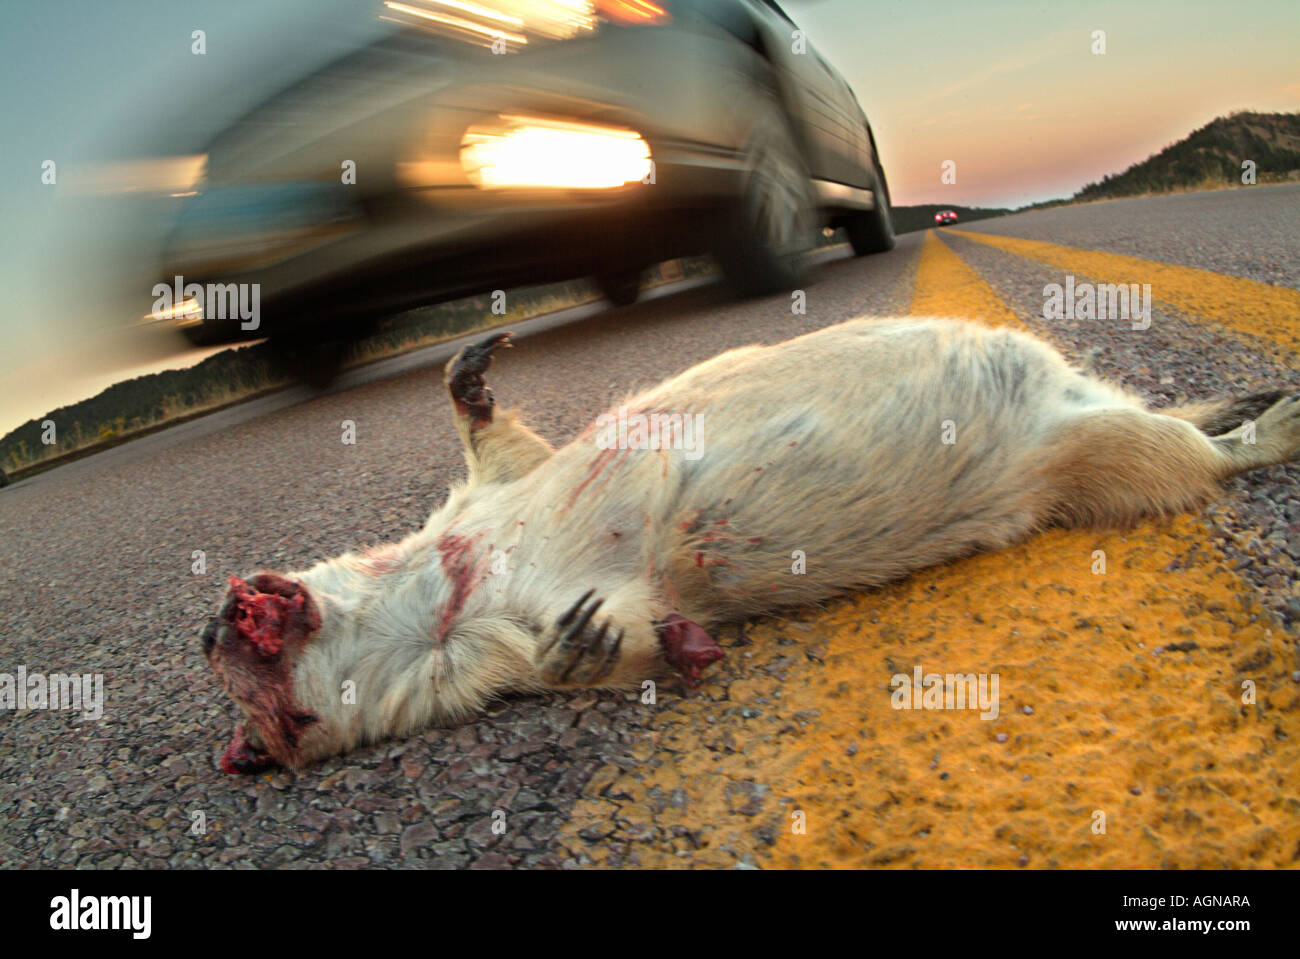 Roadkill of a Black Tailed Prairie Dog - Stock Image